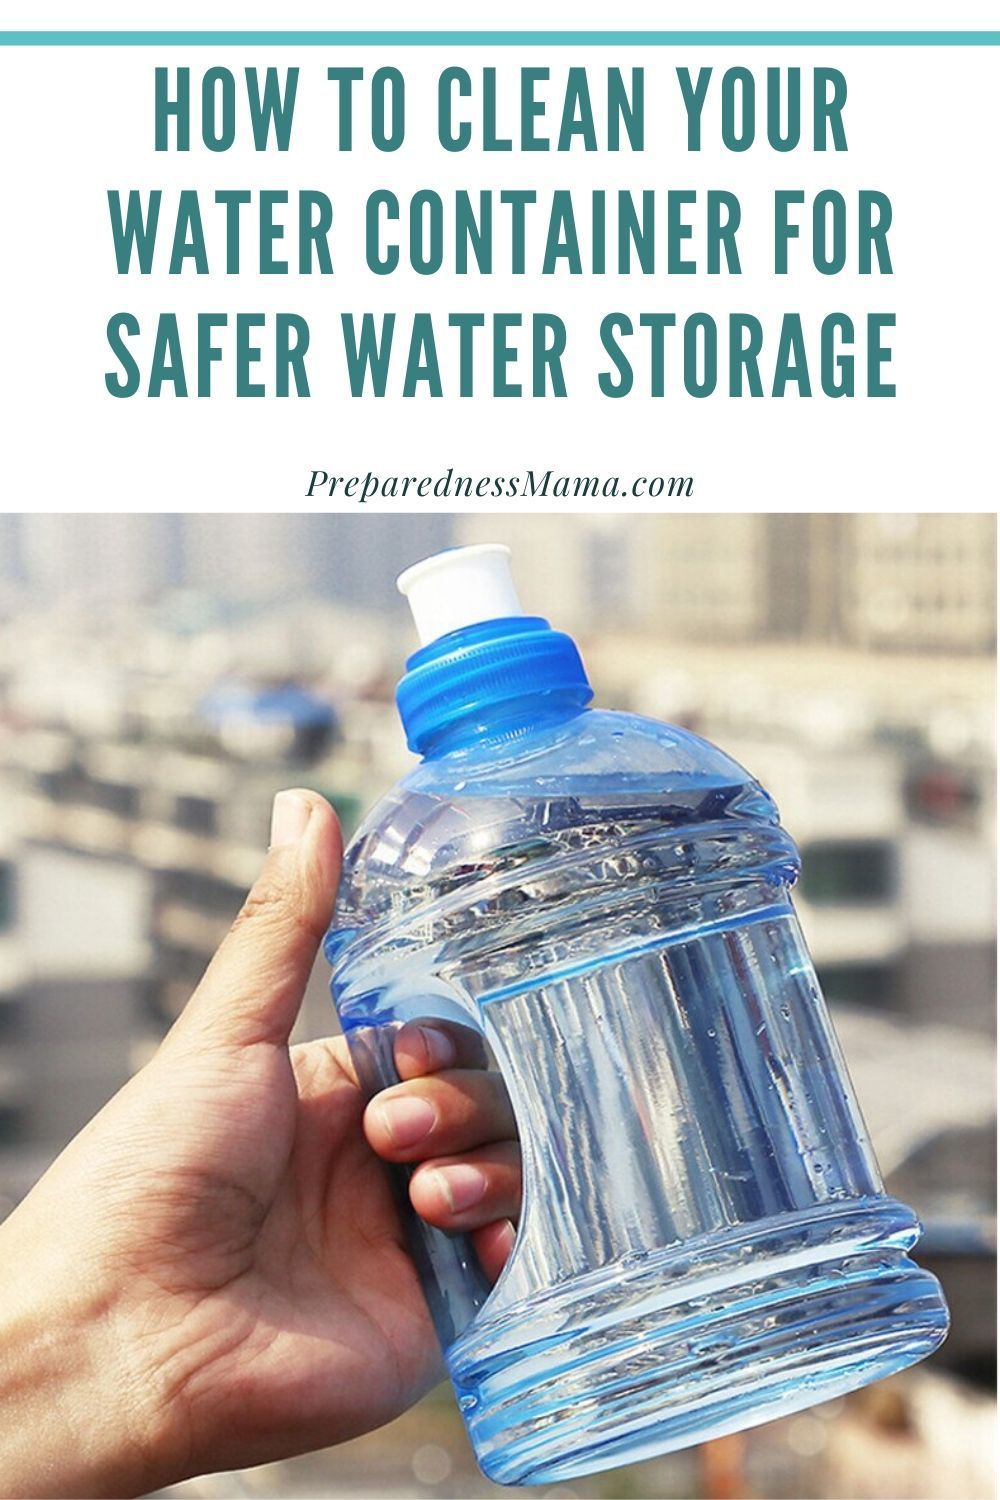 How To Clean Your Water Container For Safer Water Storage